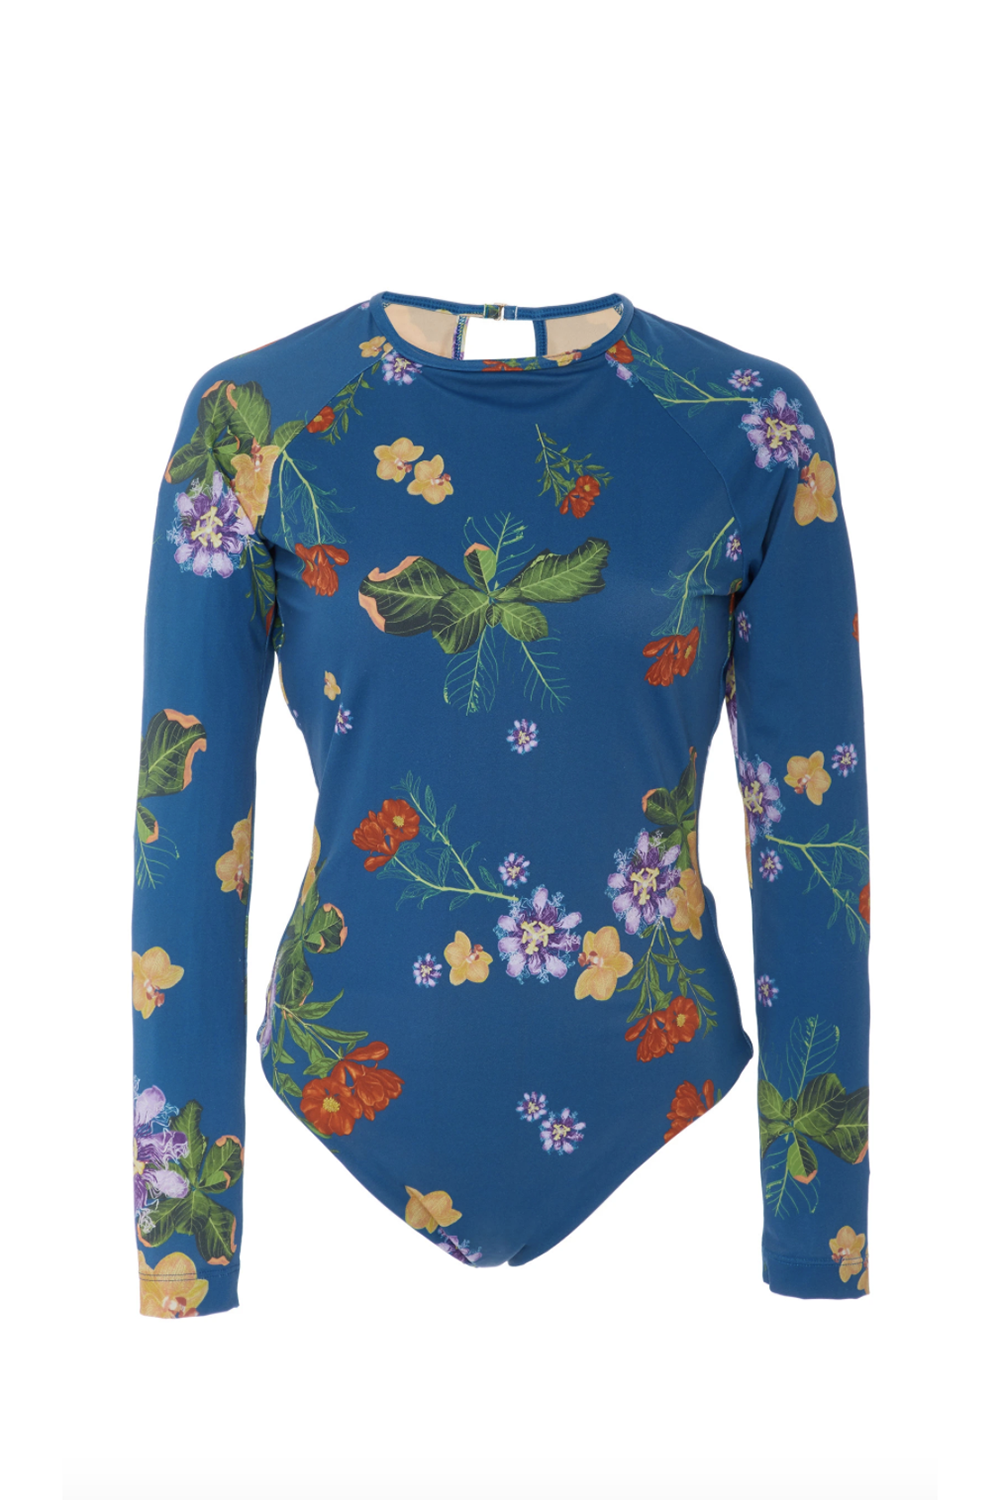 Best Long-Sleeve One-Piece Mira Printed One-Piece Swimsuit Verandah modaoperandi.com $285.00 SHOP IT One thing I love about long-sleeve swimsuits: you can go easy on the sunblock. This is perfect for those who are looking for fuller coverage, but still want something fresh and eye-catching.